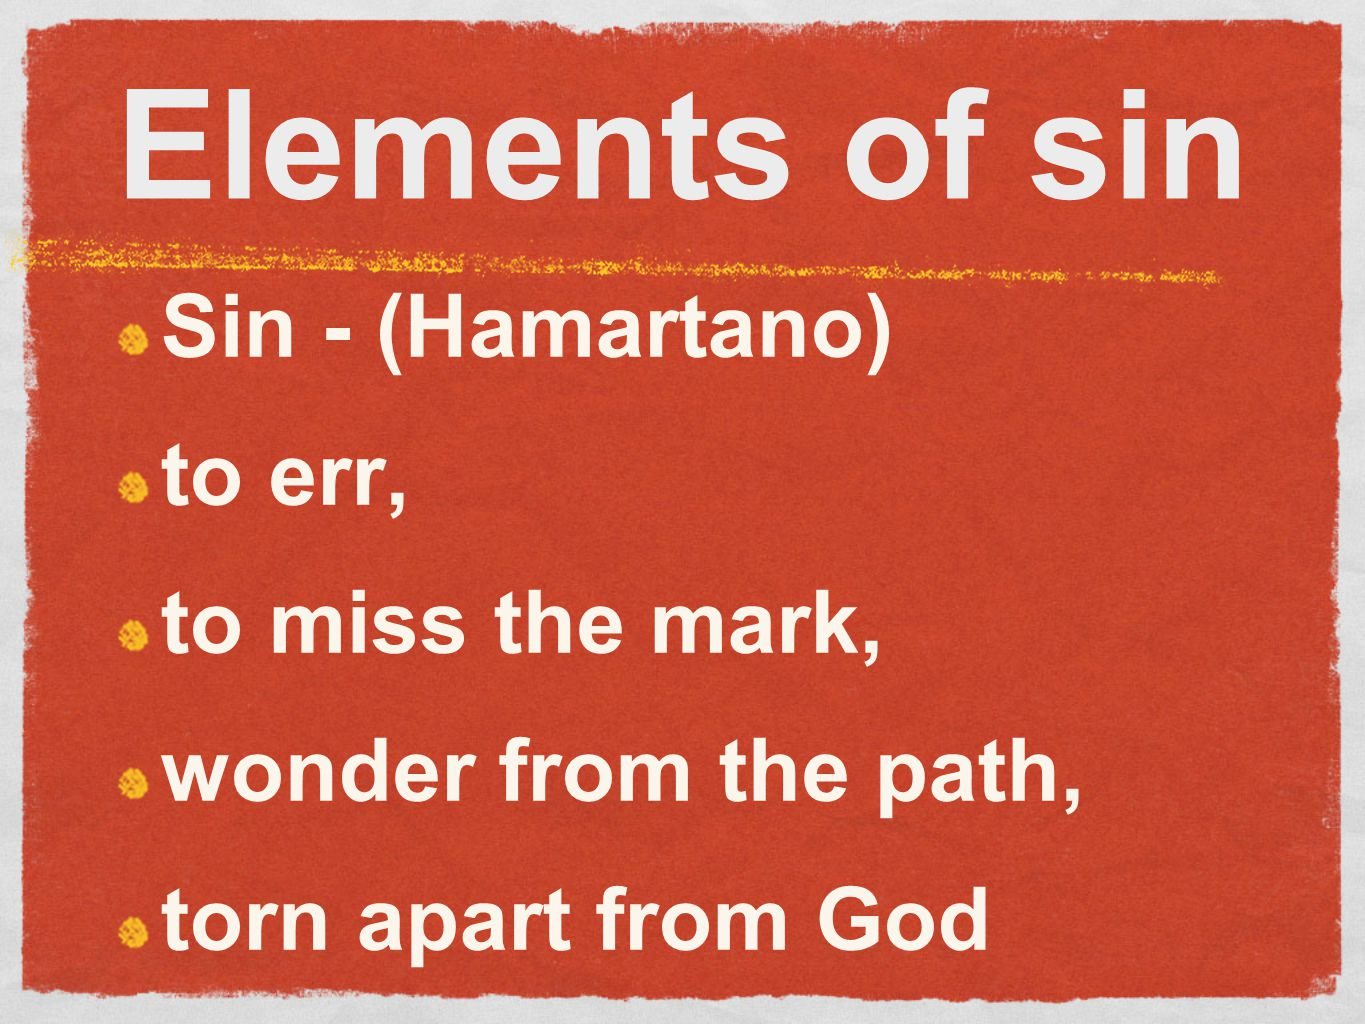 Elements of sin Sin - (Hamartano) to err, to miss the mark, wonder from the path, torn apart from God